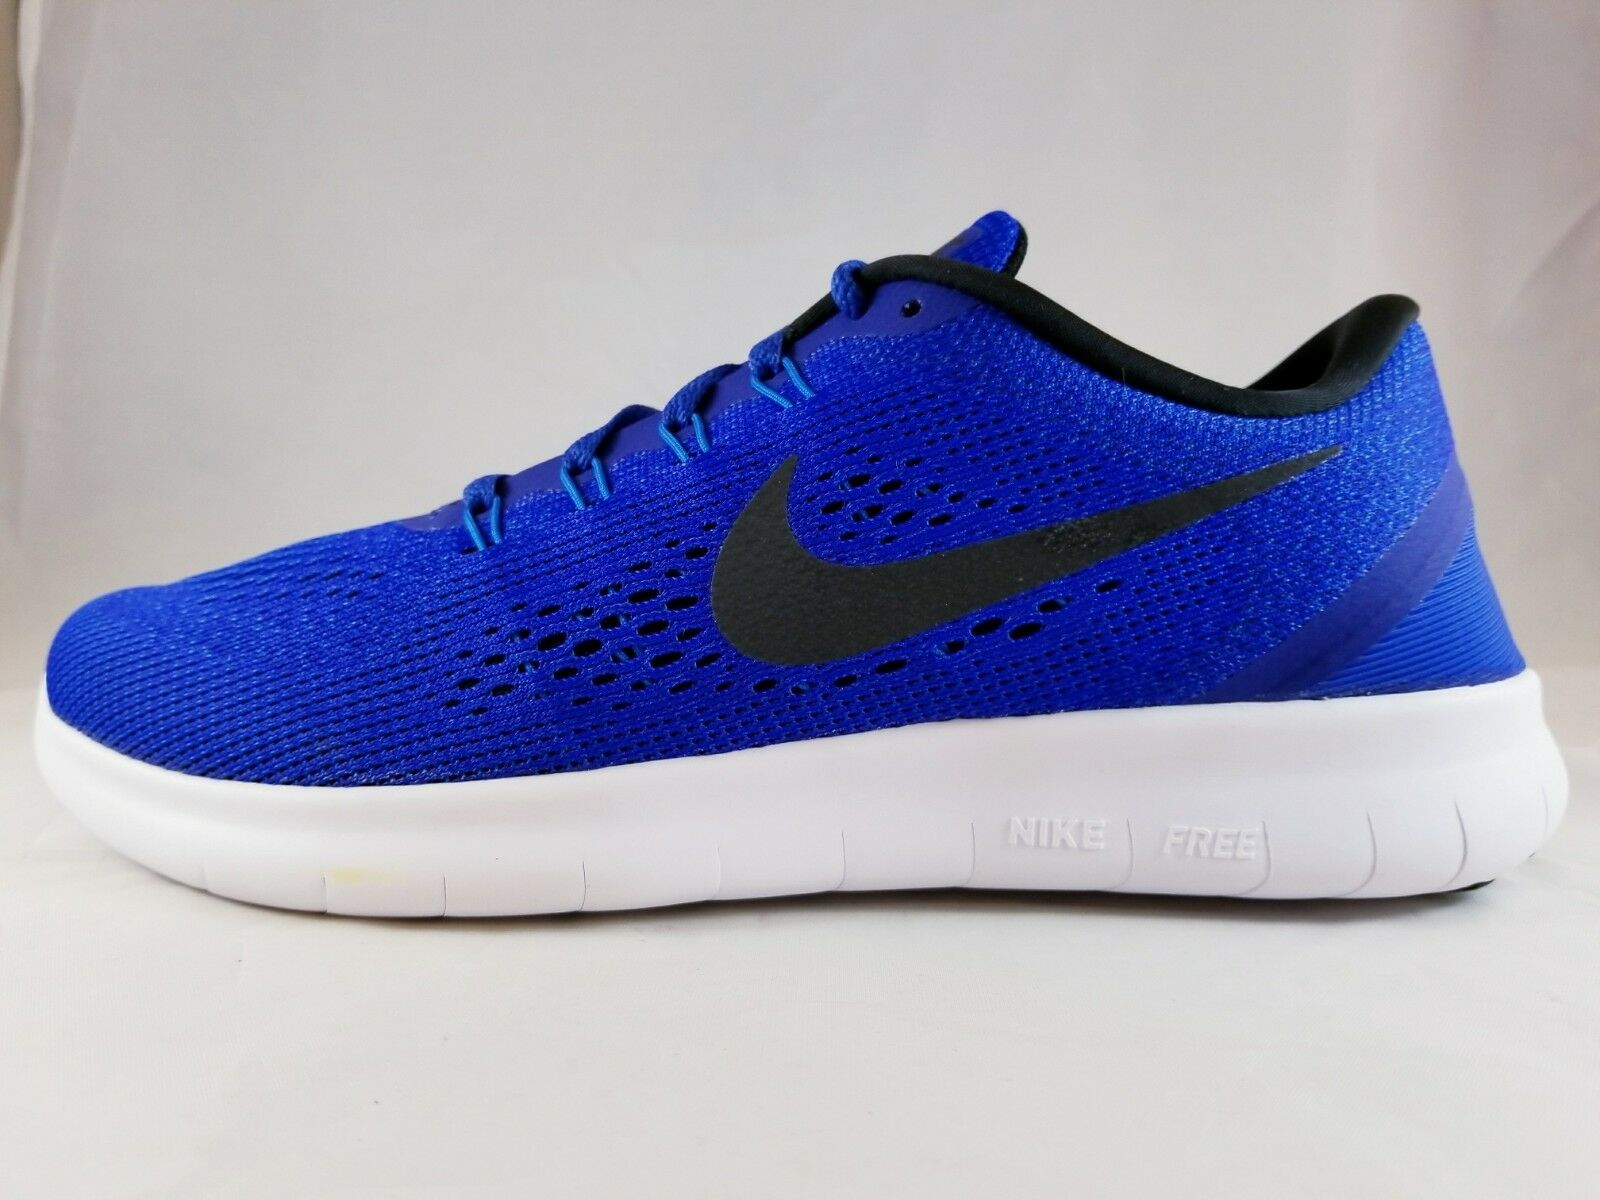 Nike Free RN Men's Running Shoes 831508 400 Comfortable Great discount